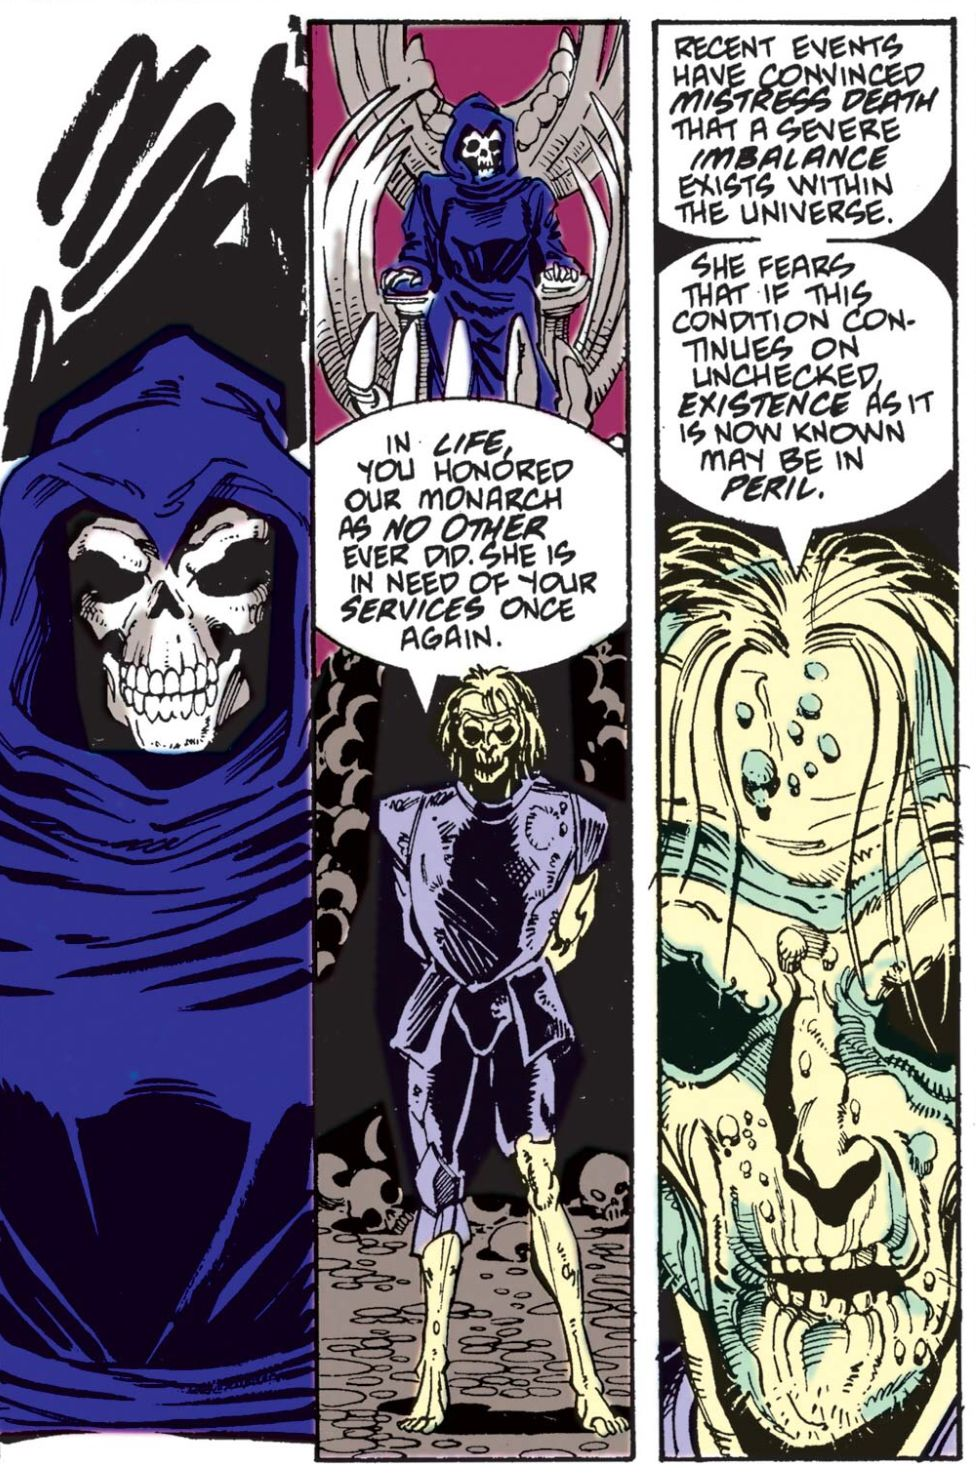 Deputy Mistress Orders Death Thanos to Universe in Silver Surfer # 34, Marvel Comics (1990)